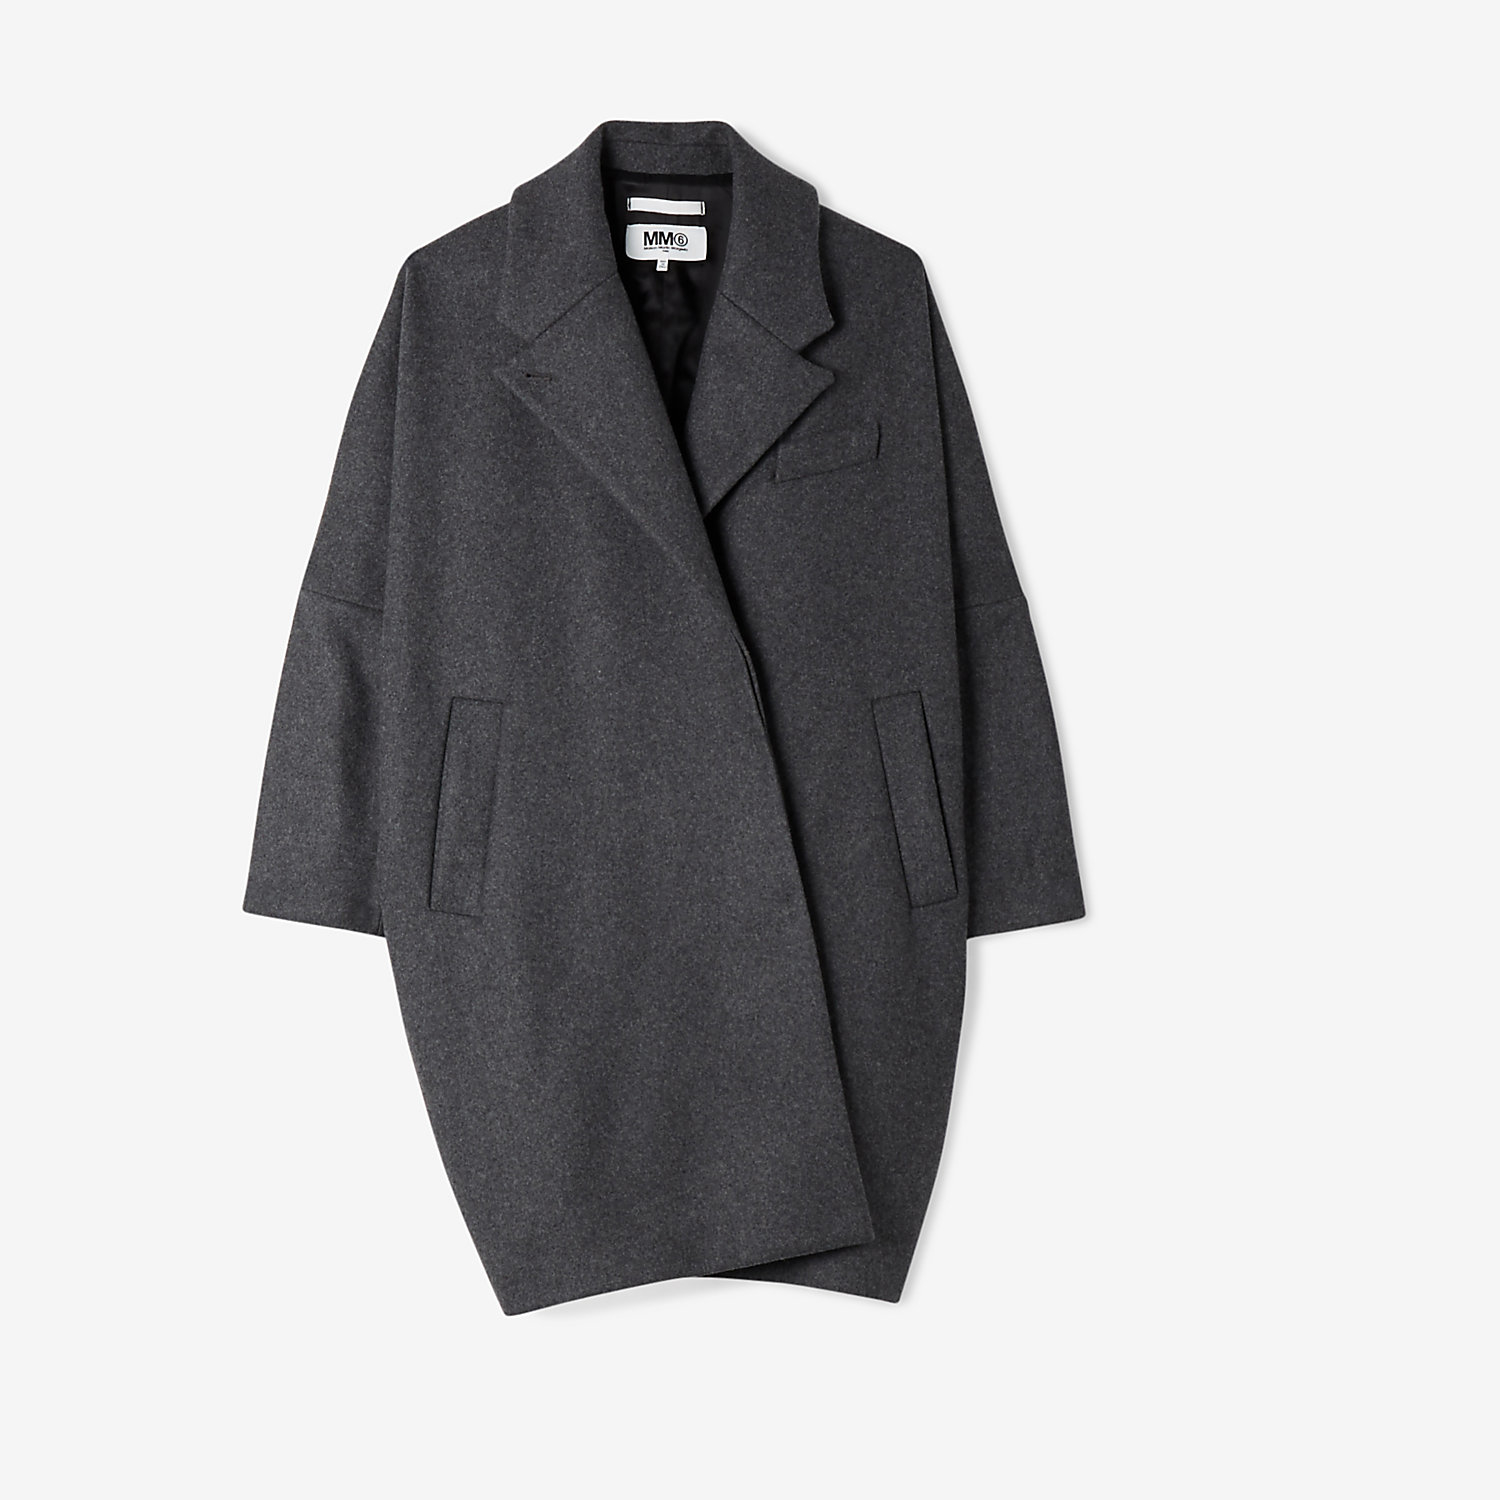 Mm6 by maison martin margiela cocoon coat in gray grey for Mm6 maison margiela